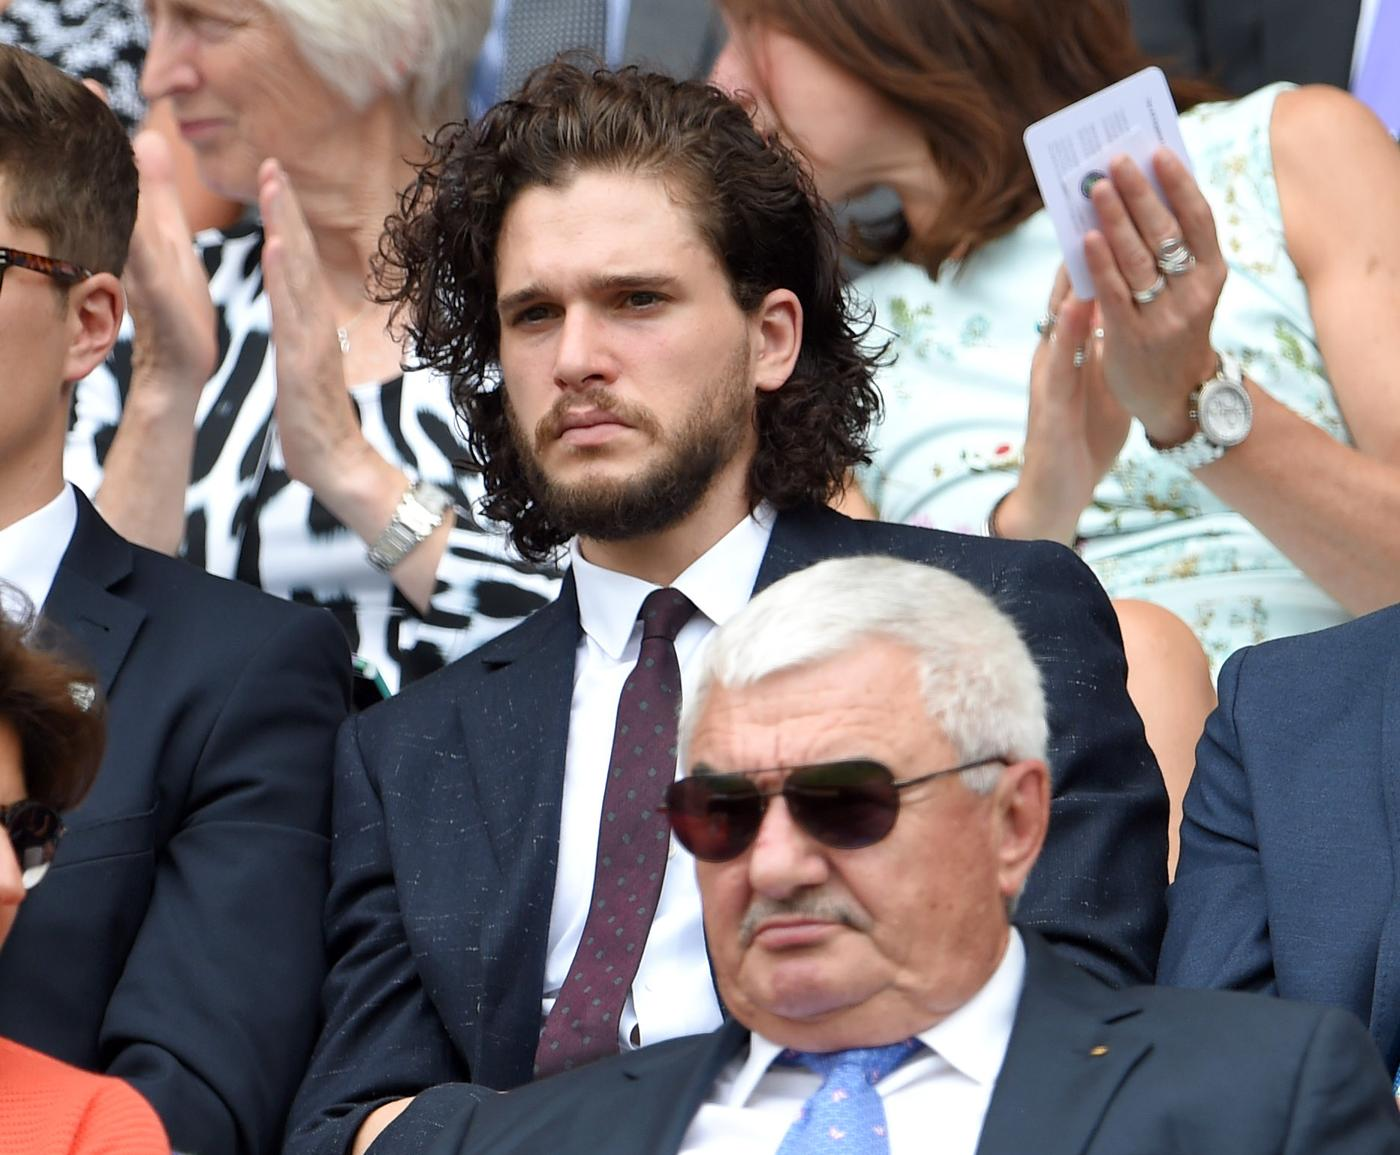 Kit Harington at Wimbledon 2015